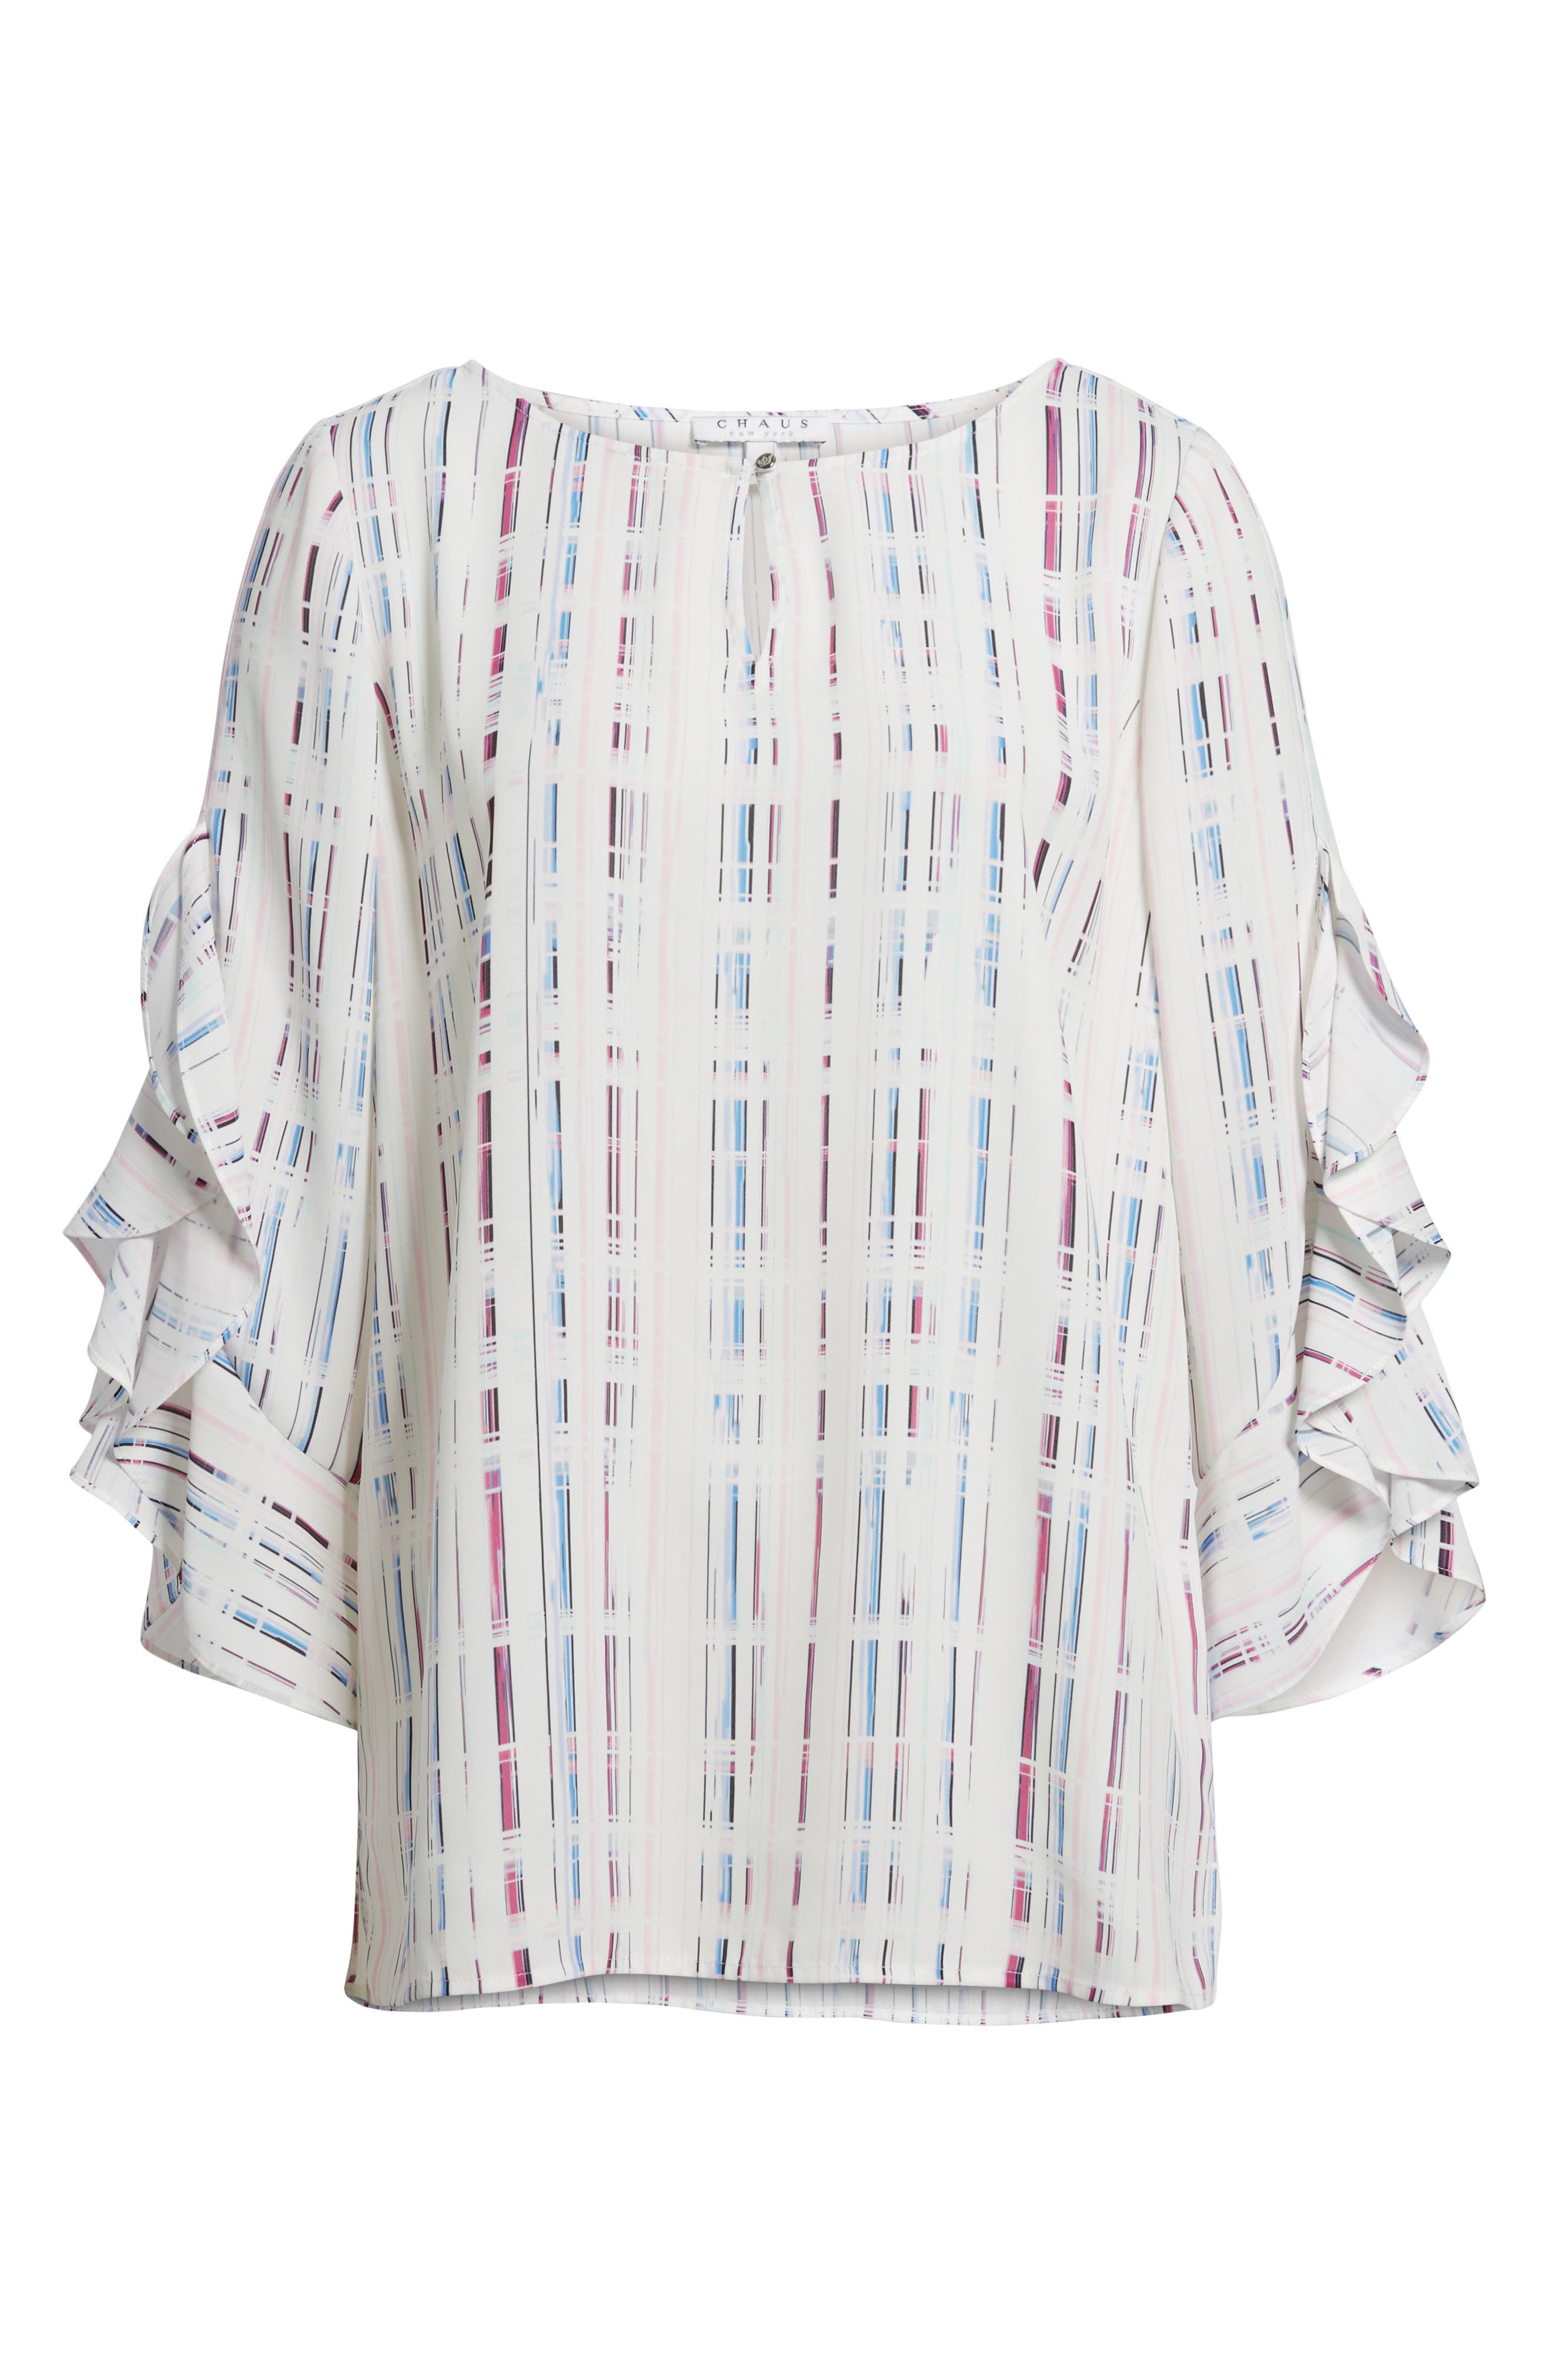 Prism Grid Print Blouse,                             Alternate thumbnail 6, color,                             103-New Ivory